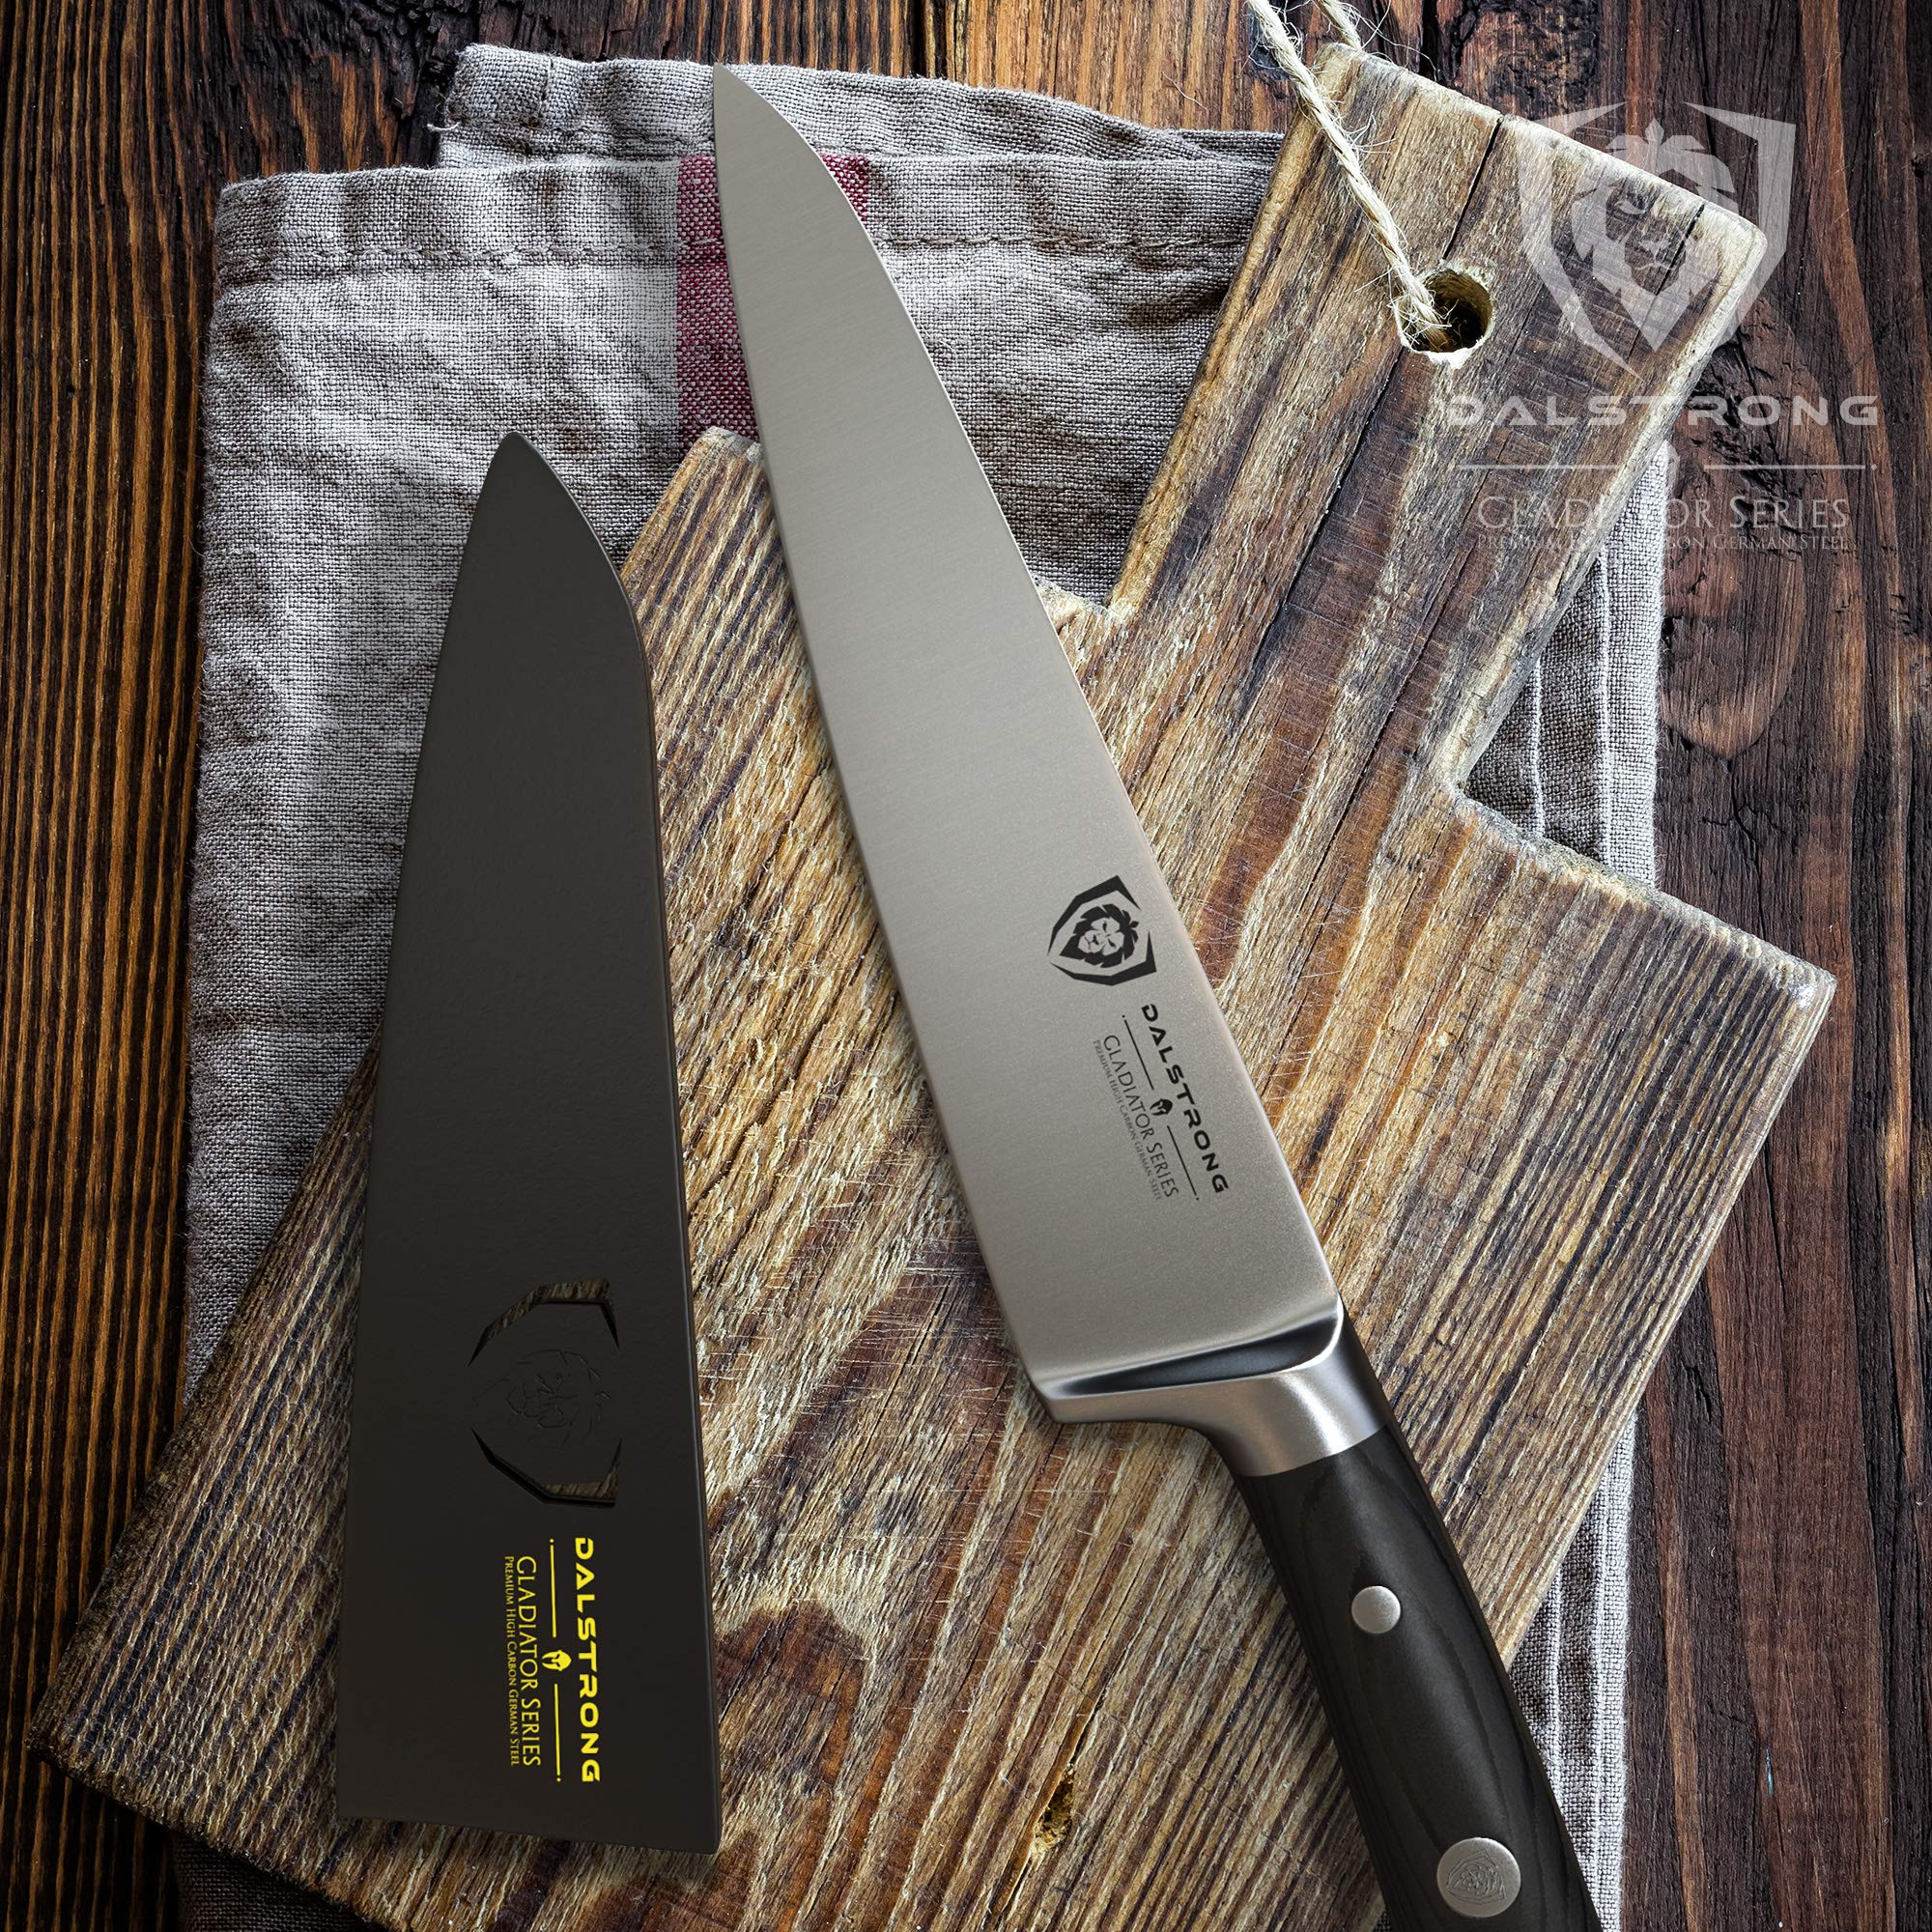 Dalstrong Chef's Knife - Gladiator Series - German HC Steel - 7'' w/Sheath by Dalstrong (Image #3)